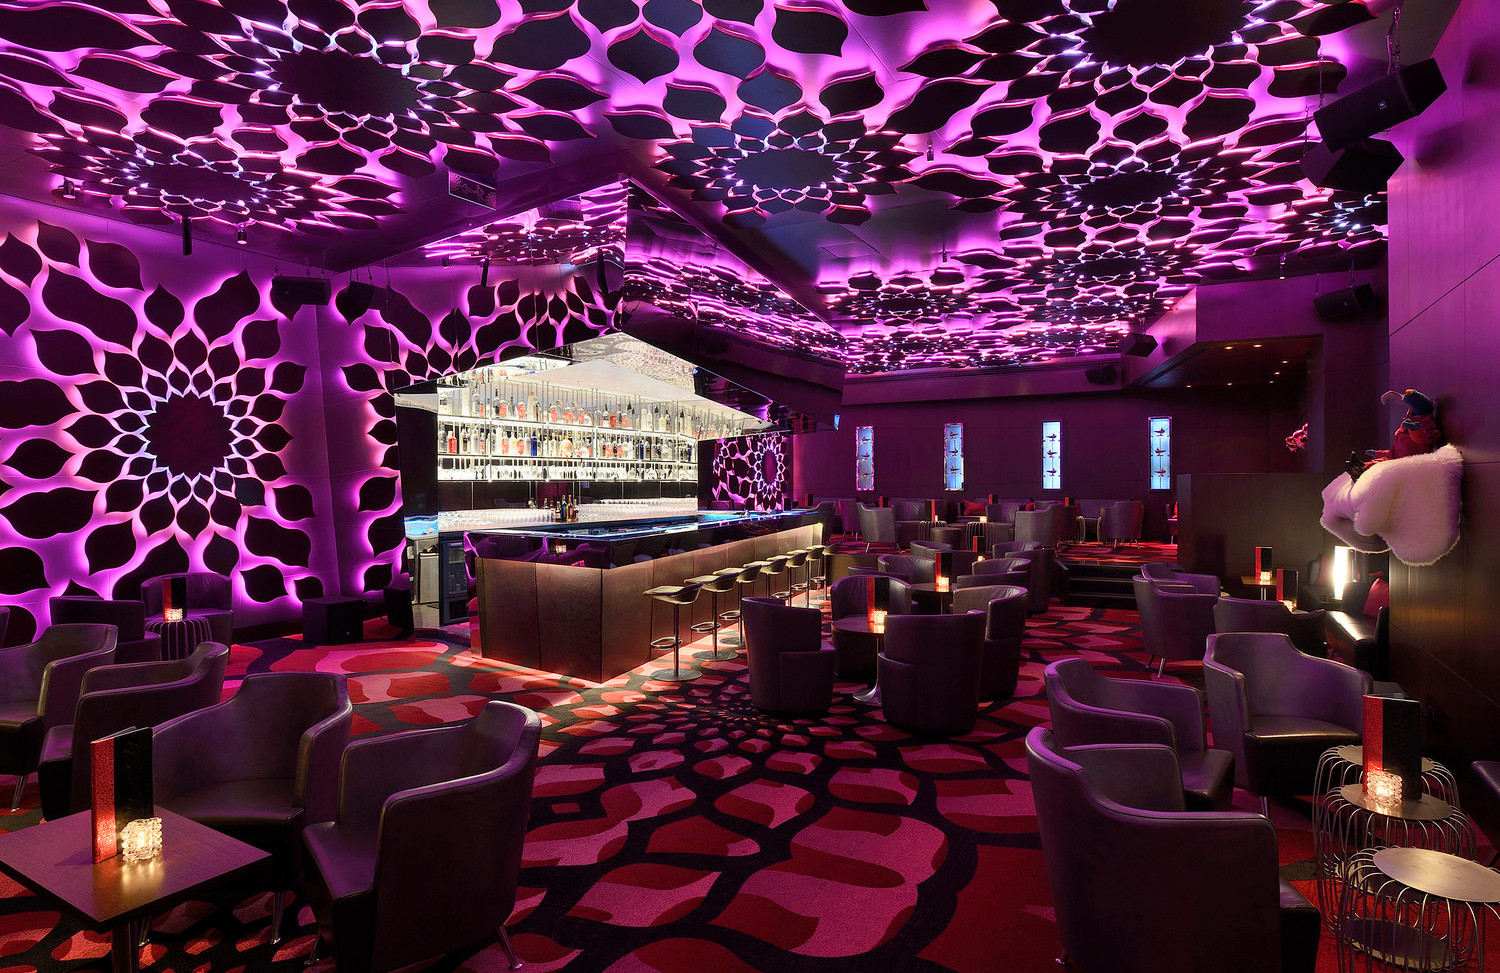 dynaled-club-disco-lighting-examples-19.